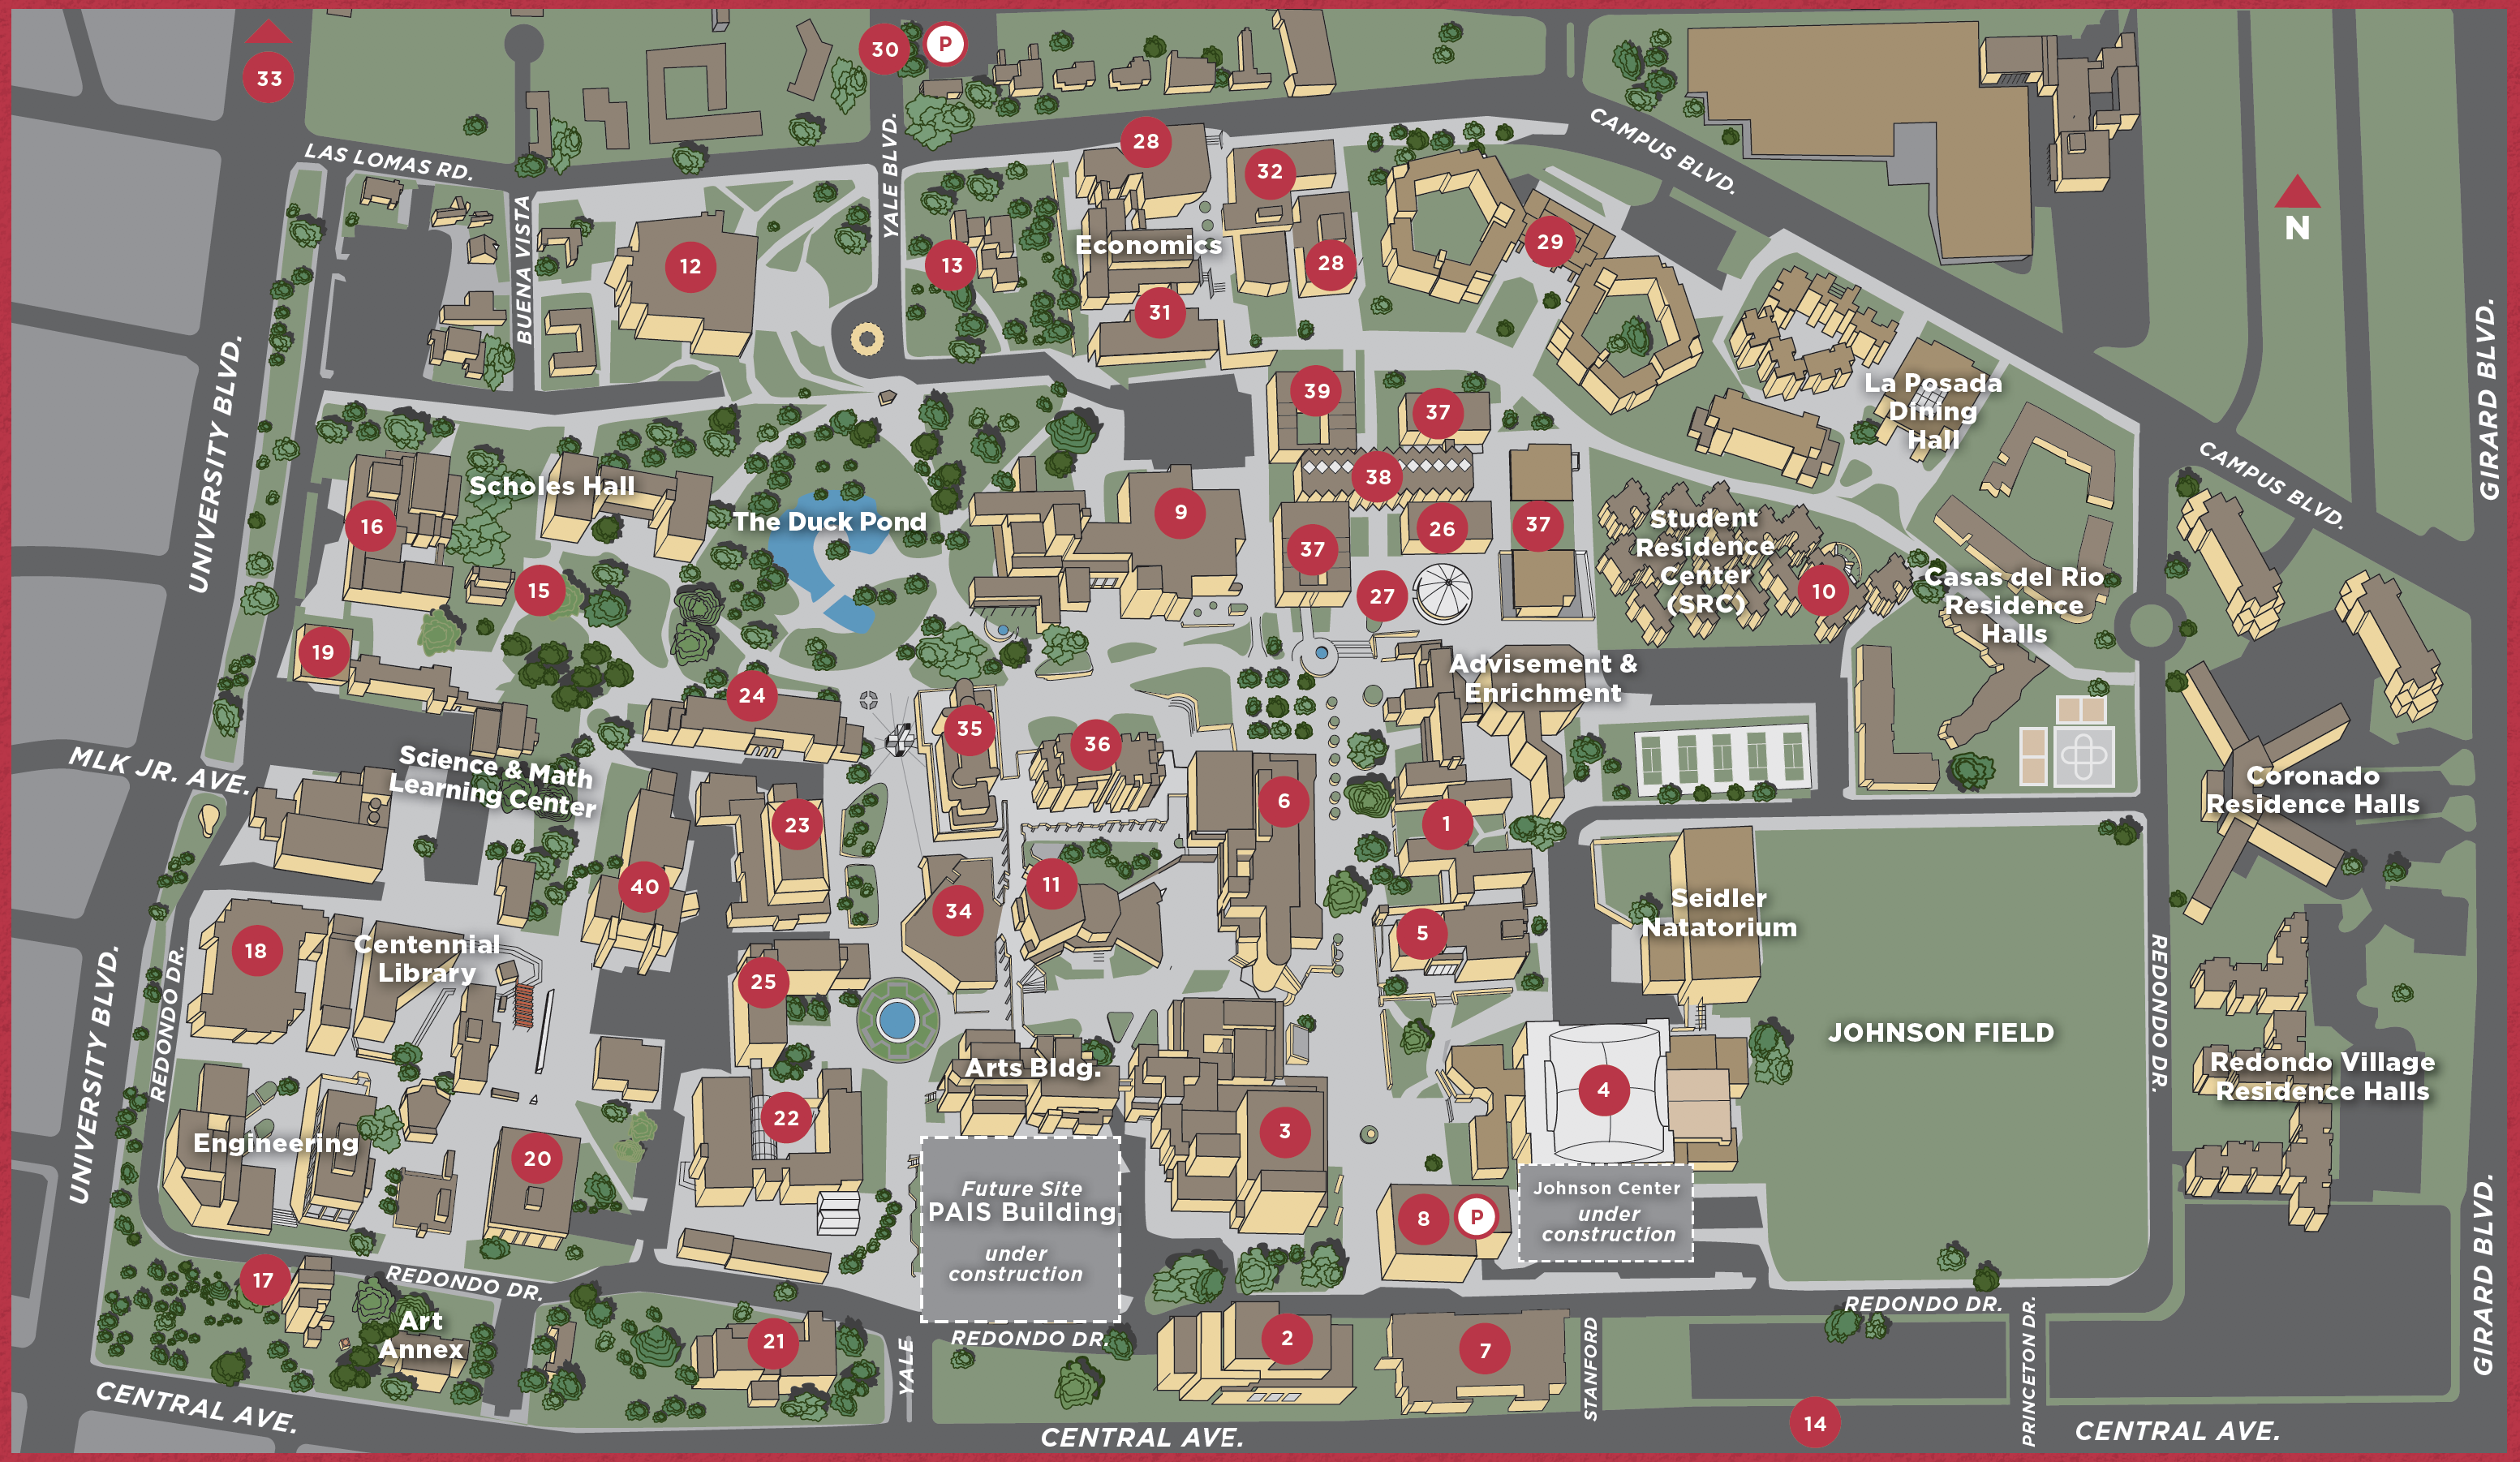 Campus Map | UNM Online Visitor's Guide on new haven campus map, yale university state map, metropolitan state college campus map, north seattle community college campus map, yale university campus master plan, yale school map, montgomery county community college campus map, newark campus map, yale university buildings, hostos community college campus map, yale university campus design, unt health science center campus map, yale university campus aerial, olivet college campus map, yale university students, yale university dorms, goodwin college campus map, illinois institute of technology campus map, yale campus map 2014,